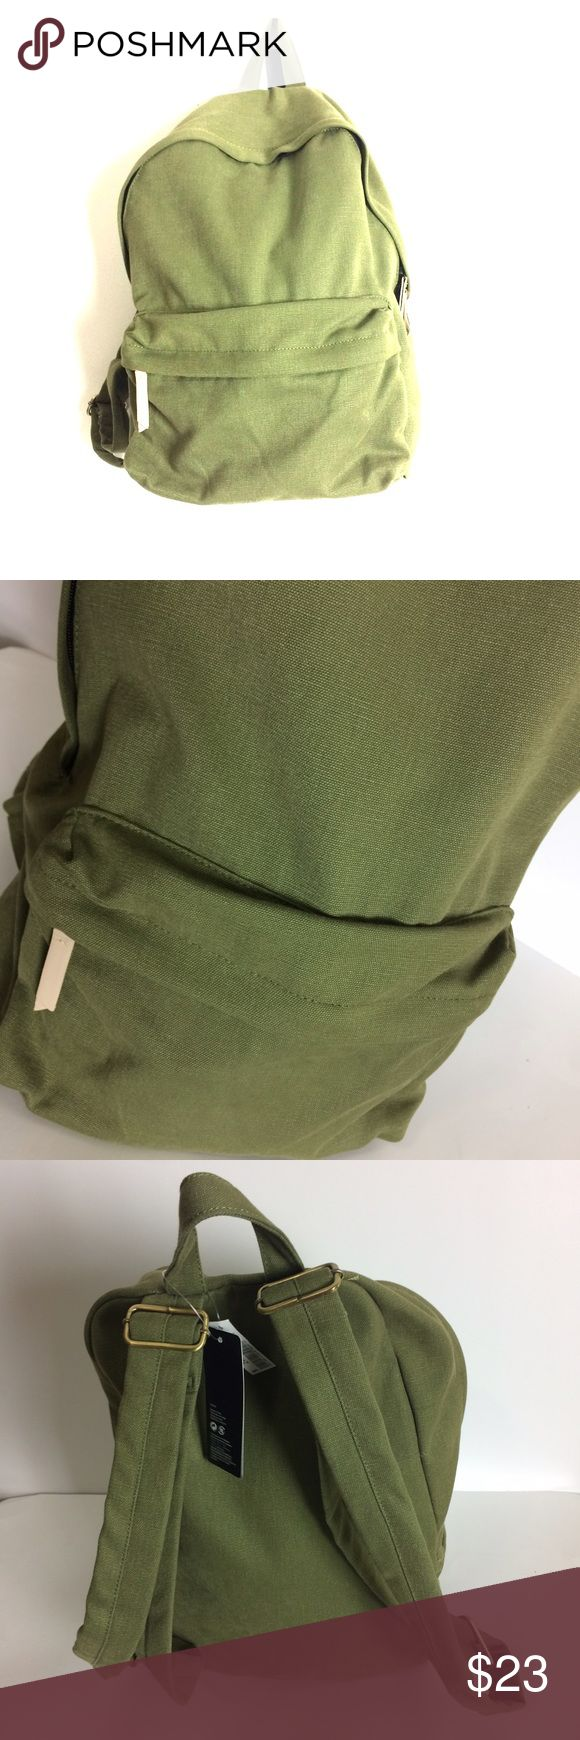 H & M Military Green Backpack Love this backpack super cute, stylish and trendy! NWT! PRICE IS NOT FIRM OFFERS ACCEPTED UPON REQUEST.. This listing is BRAND NEW WITH TAGS! Material: Divided Bags Backpacks